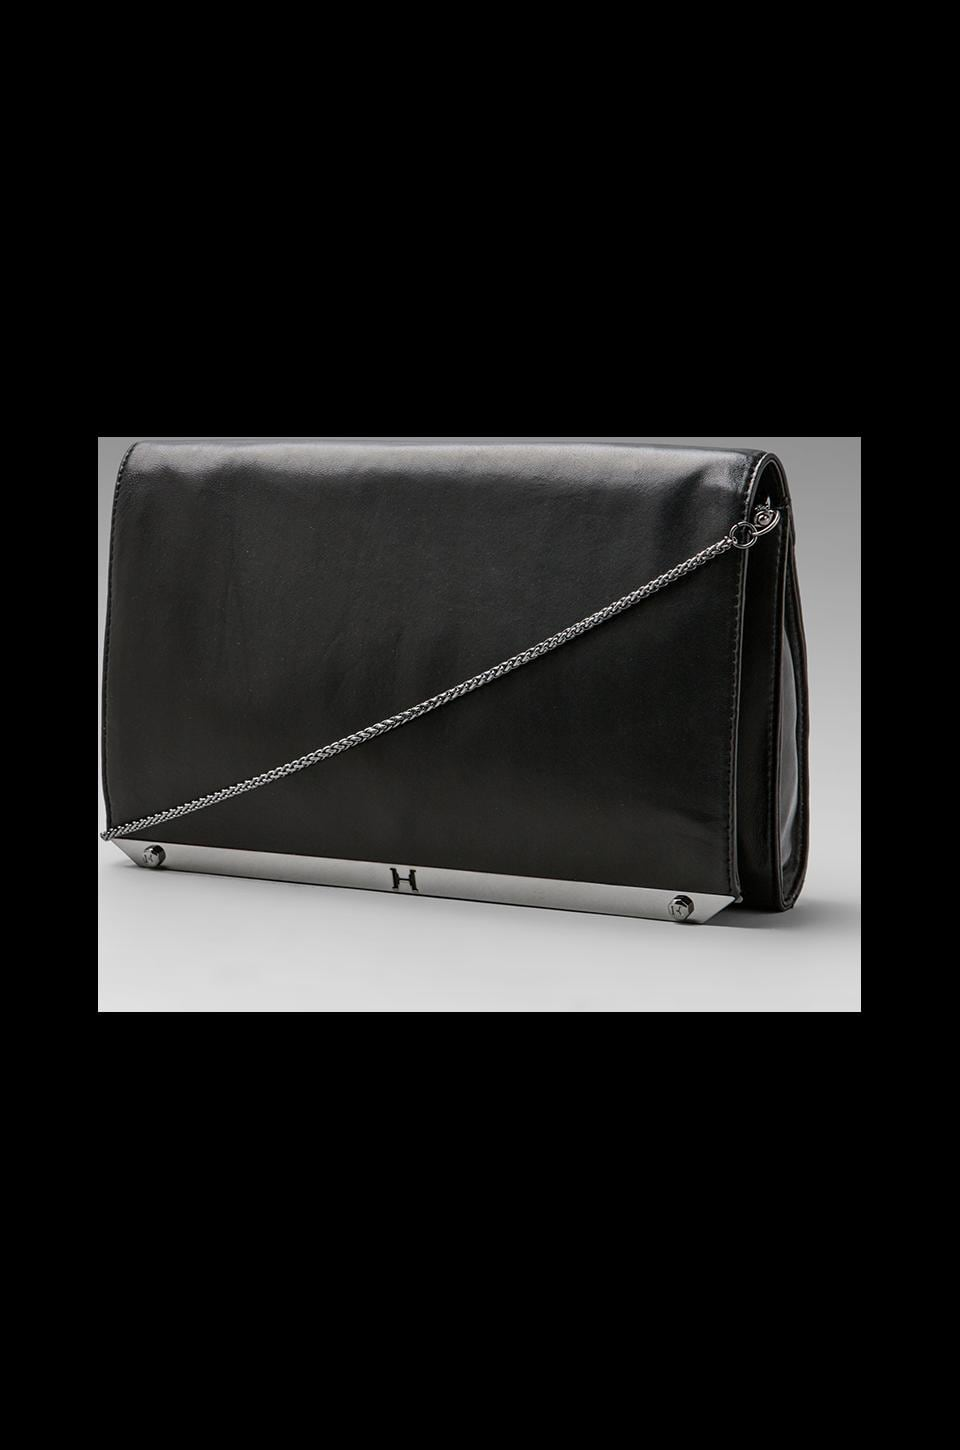 Halston Heritage Executive Shoulder Bag in Black